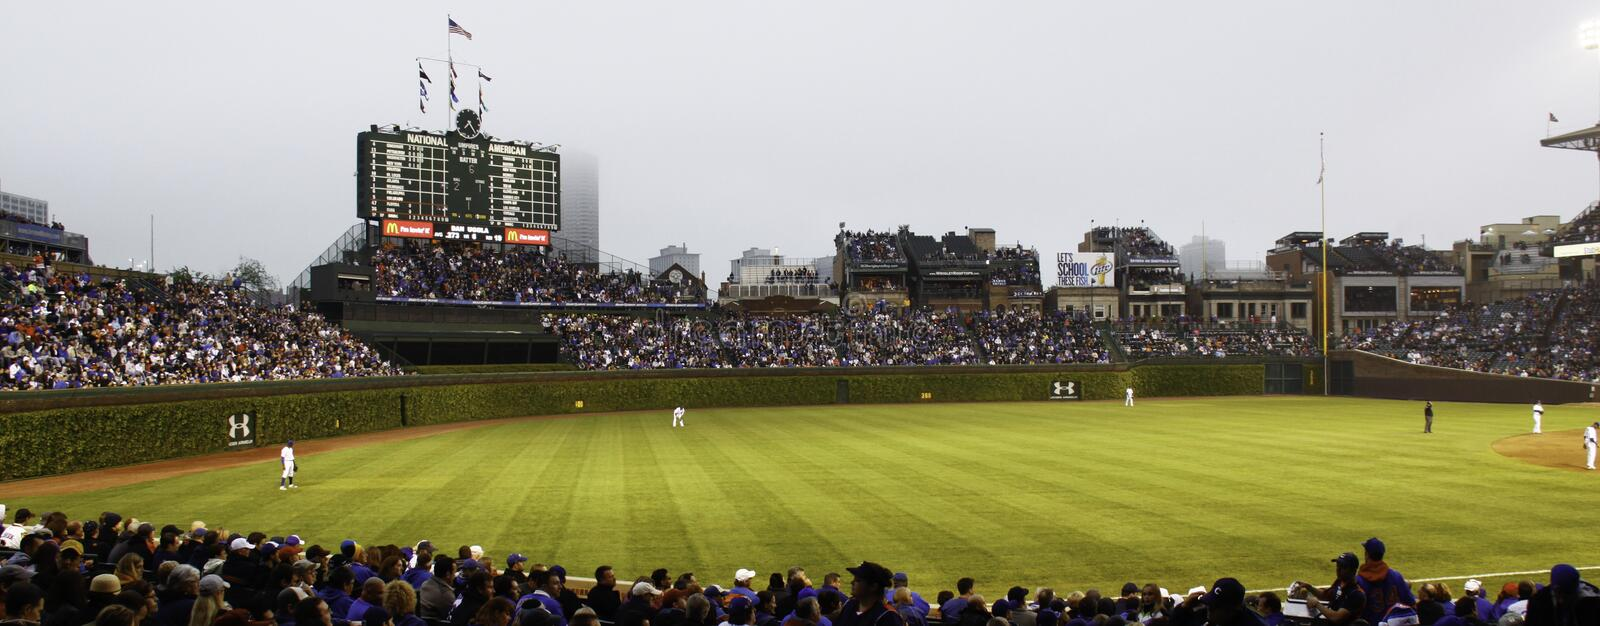 Il baseball - Chicago Cubs - Wrigley sistema l'outfield fotografie stock